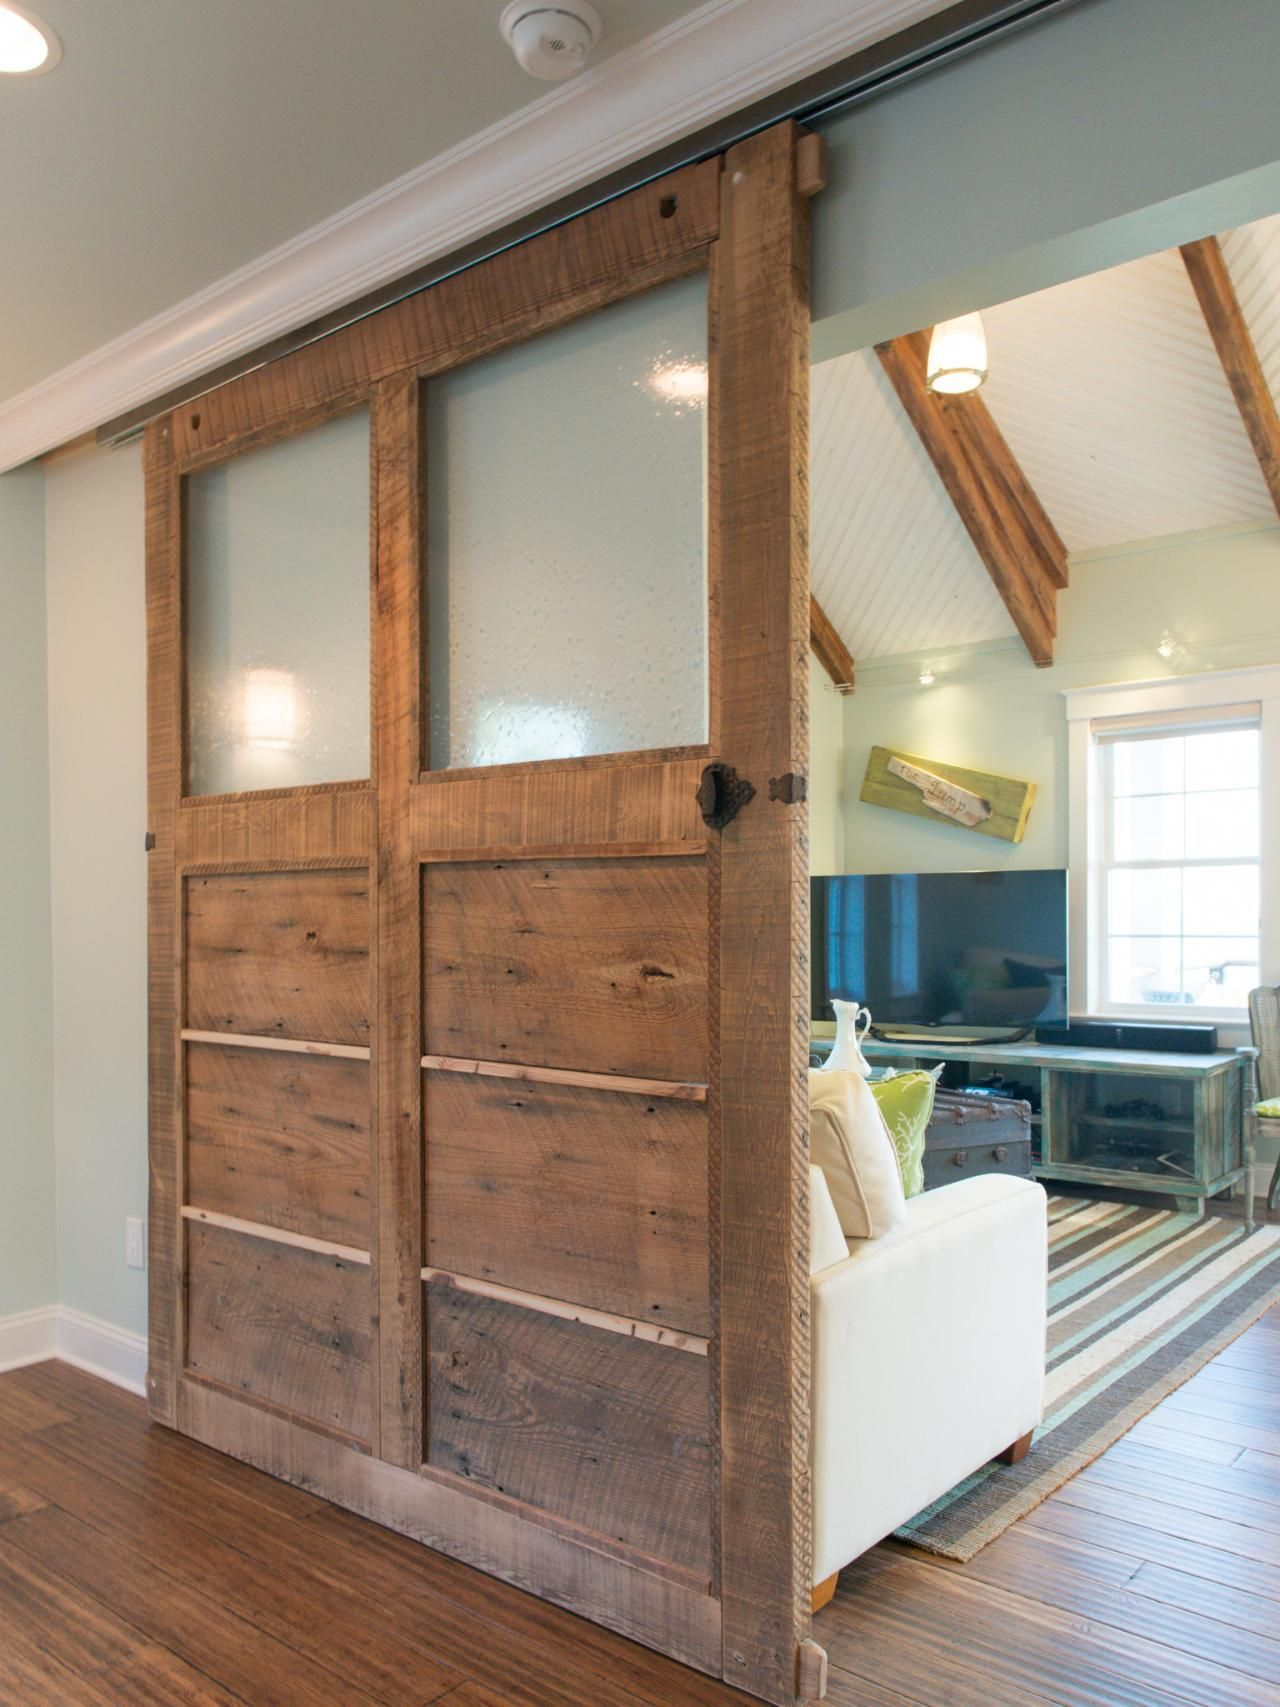 Costruire Porta Legno.How To Build A Reclaimed Wood Sliding Door Home Sweet Home